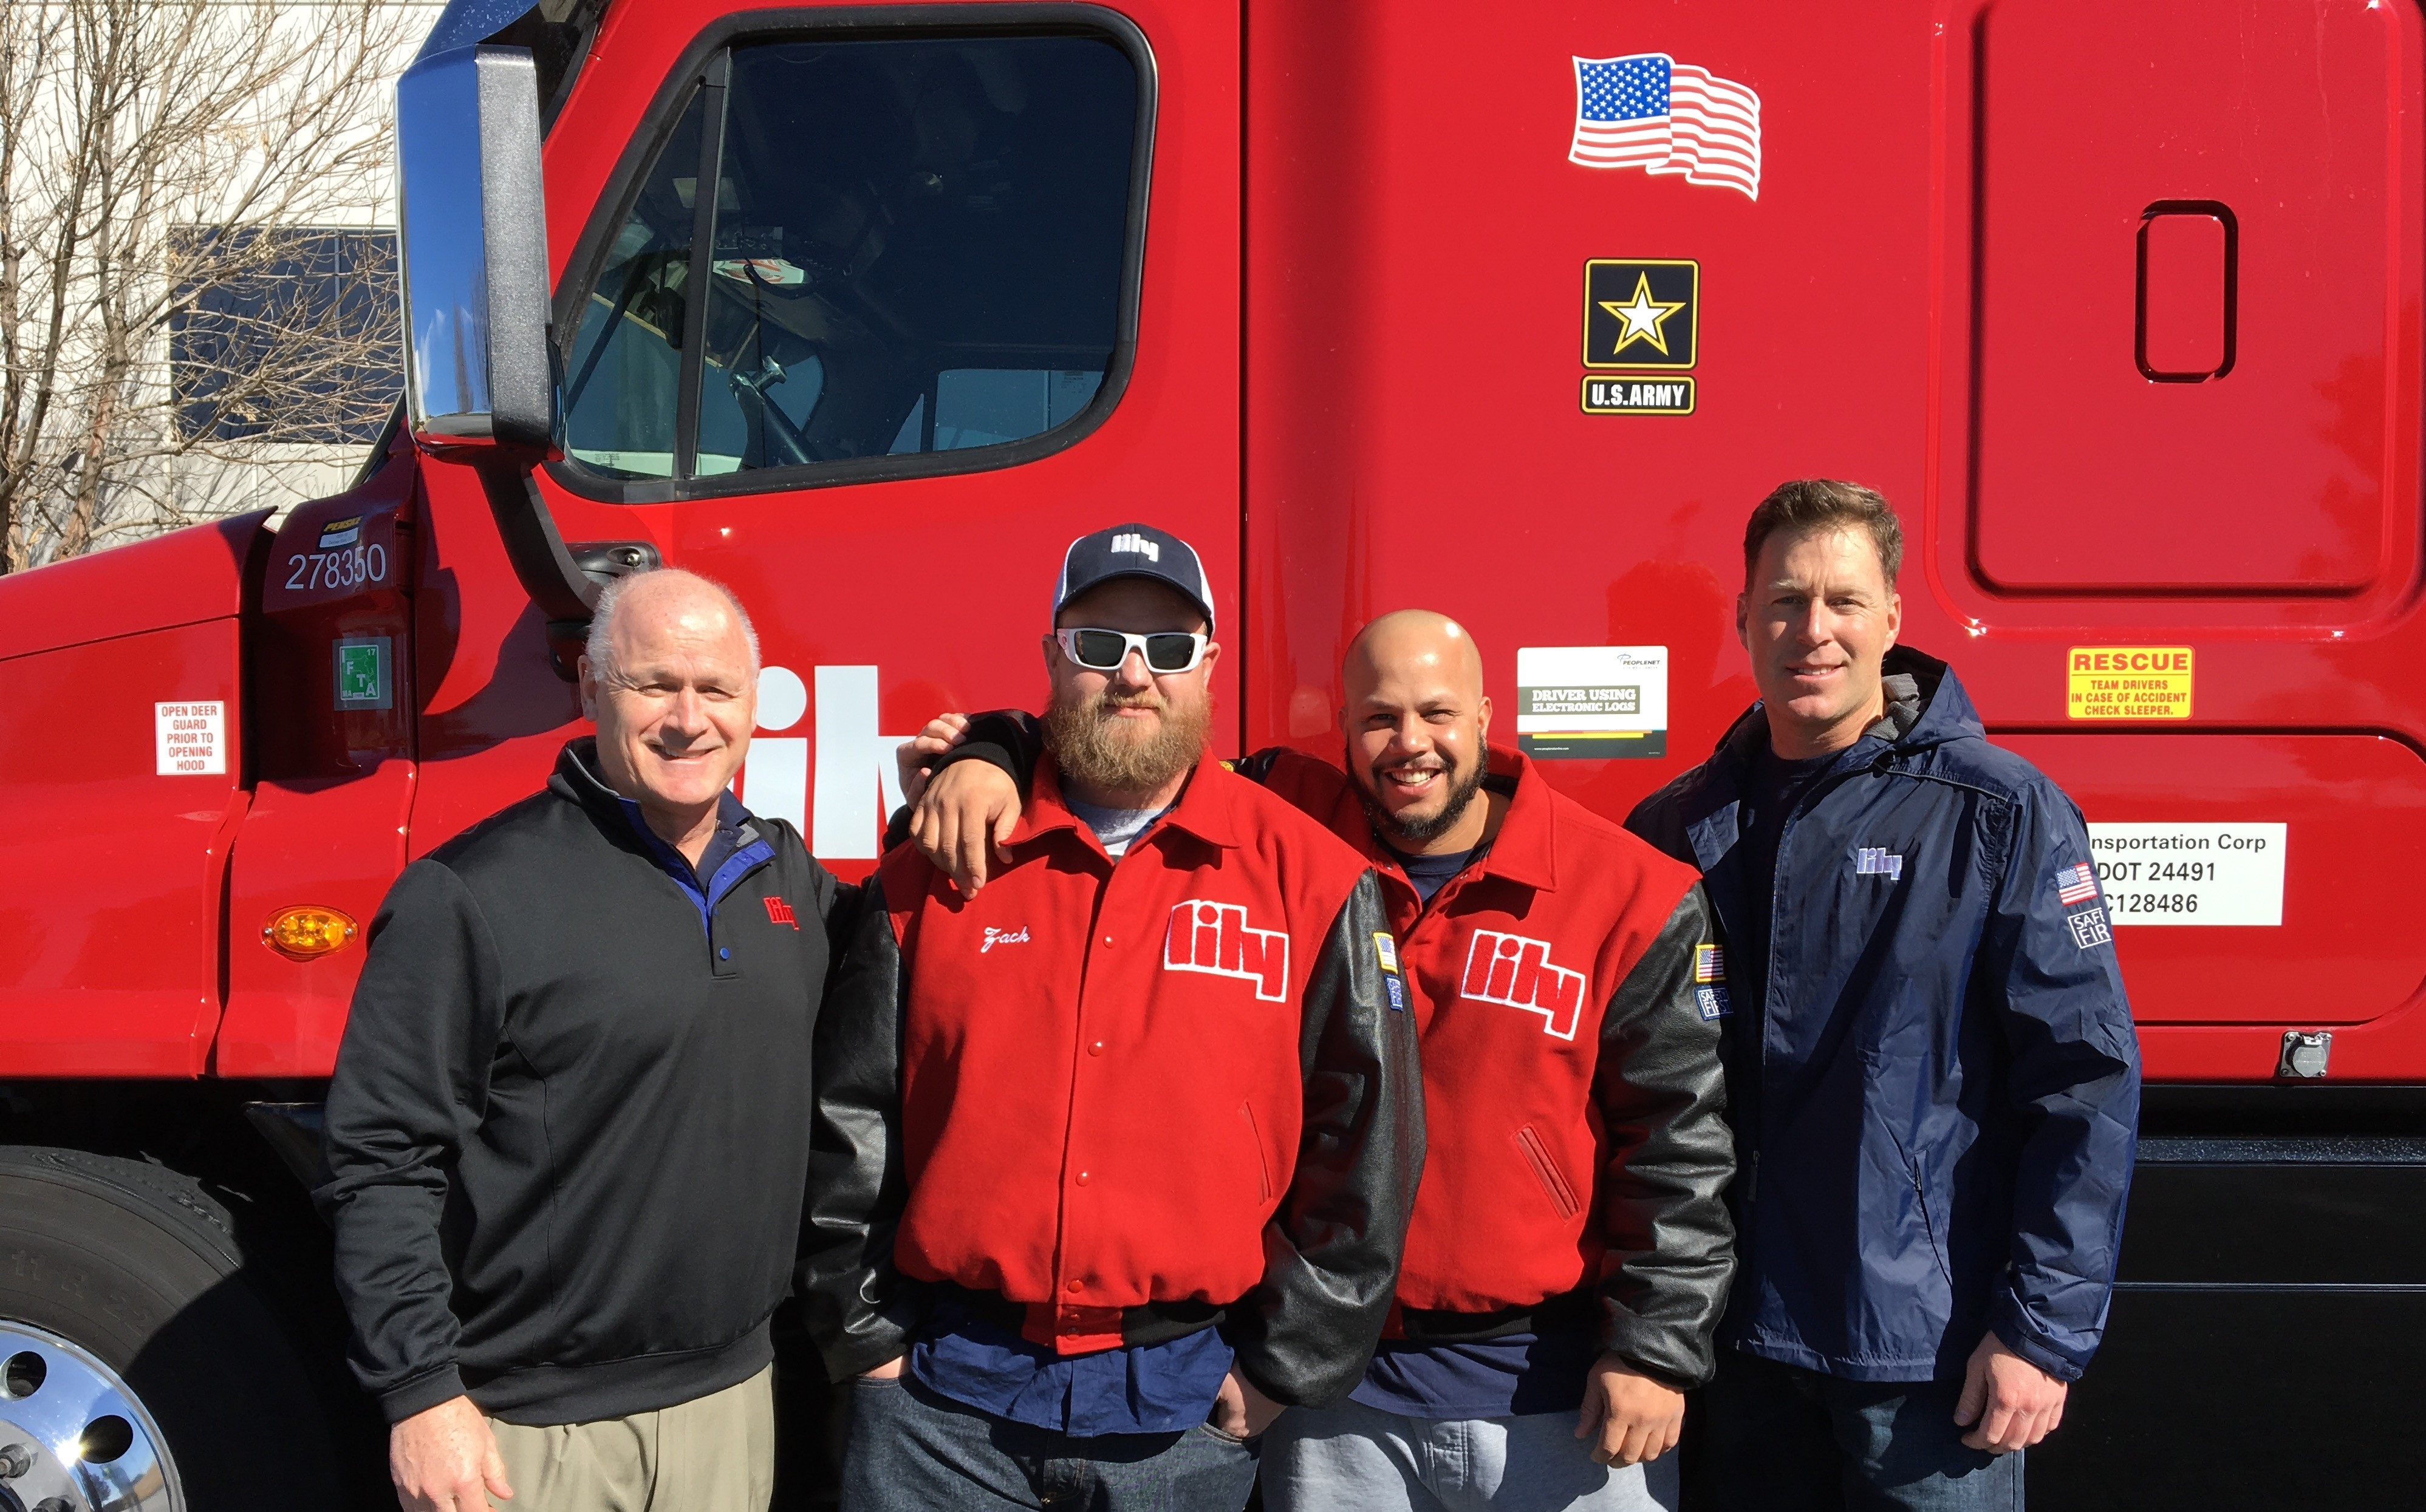 OTR Team standing in front of truck